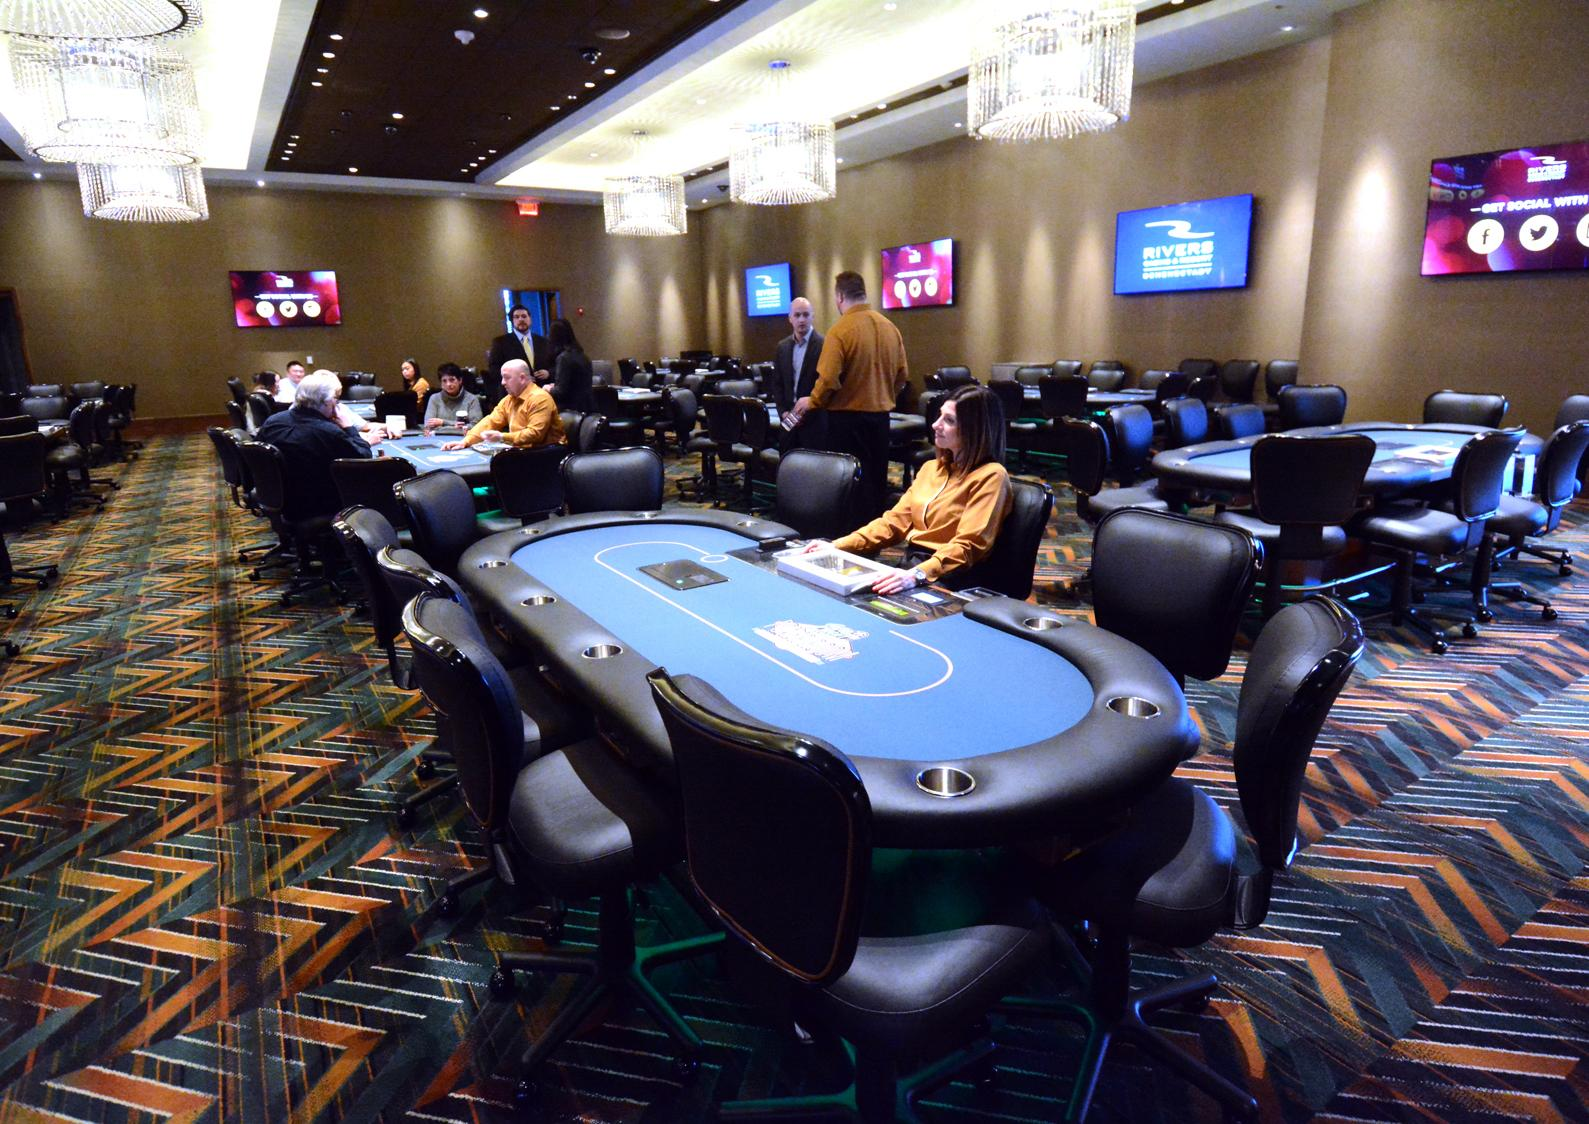 Basic Rules Texas Holdem Poker – Know the rules